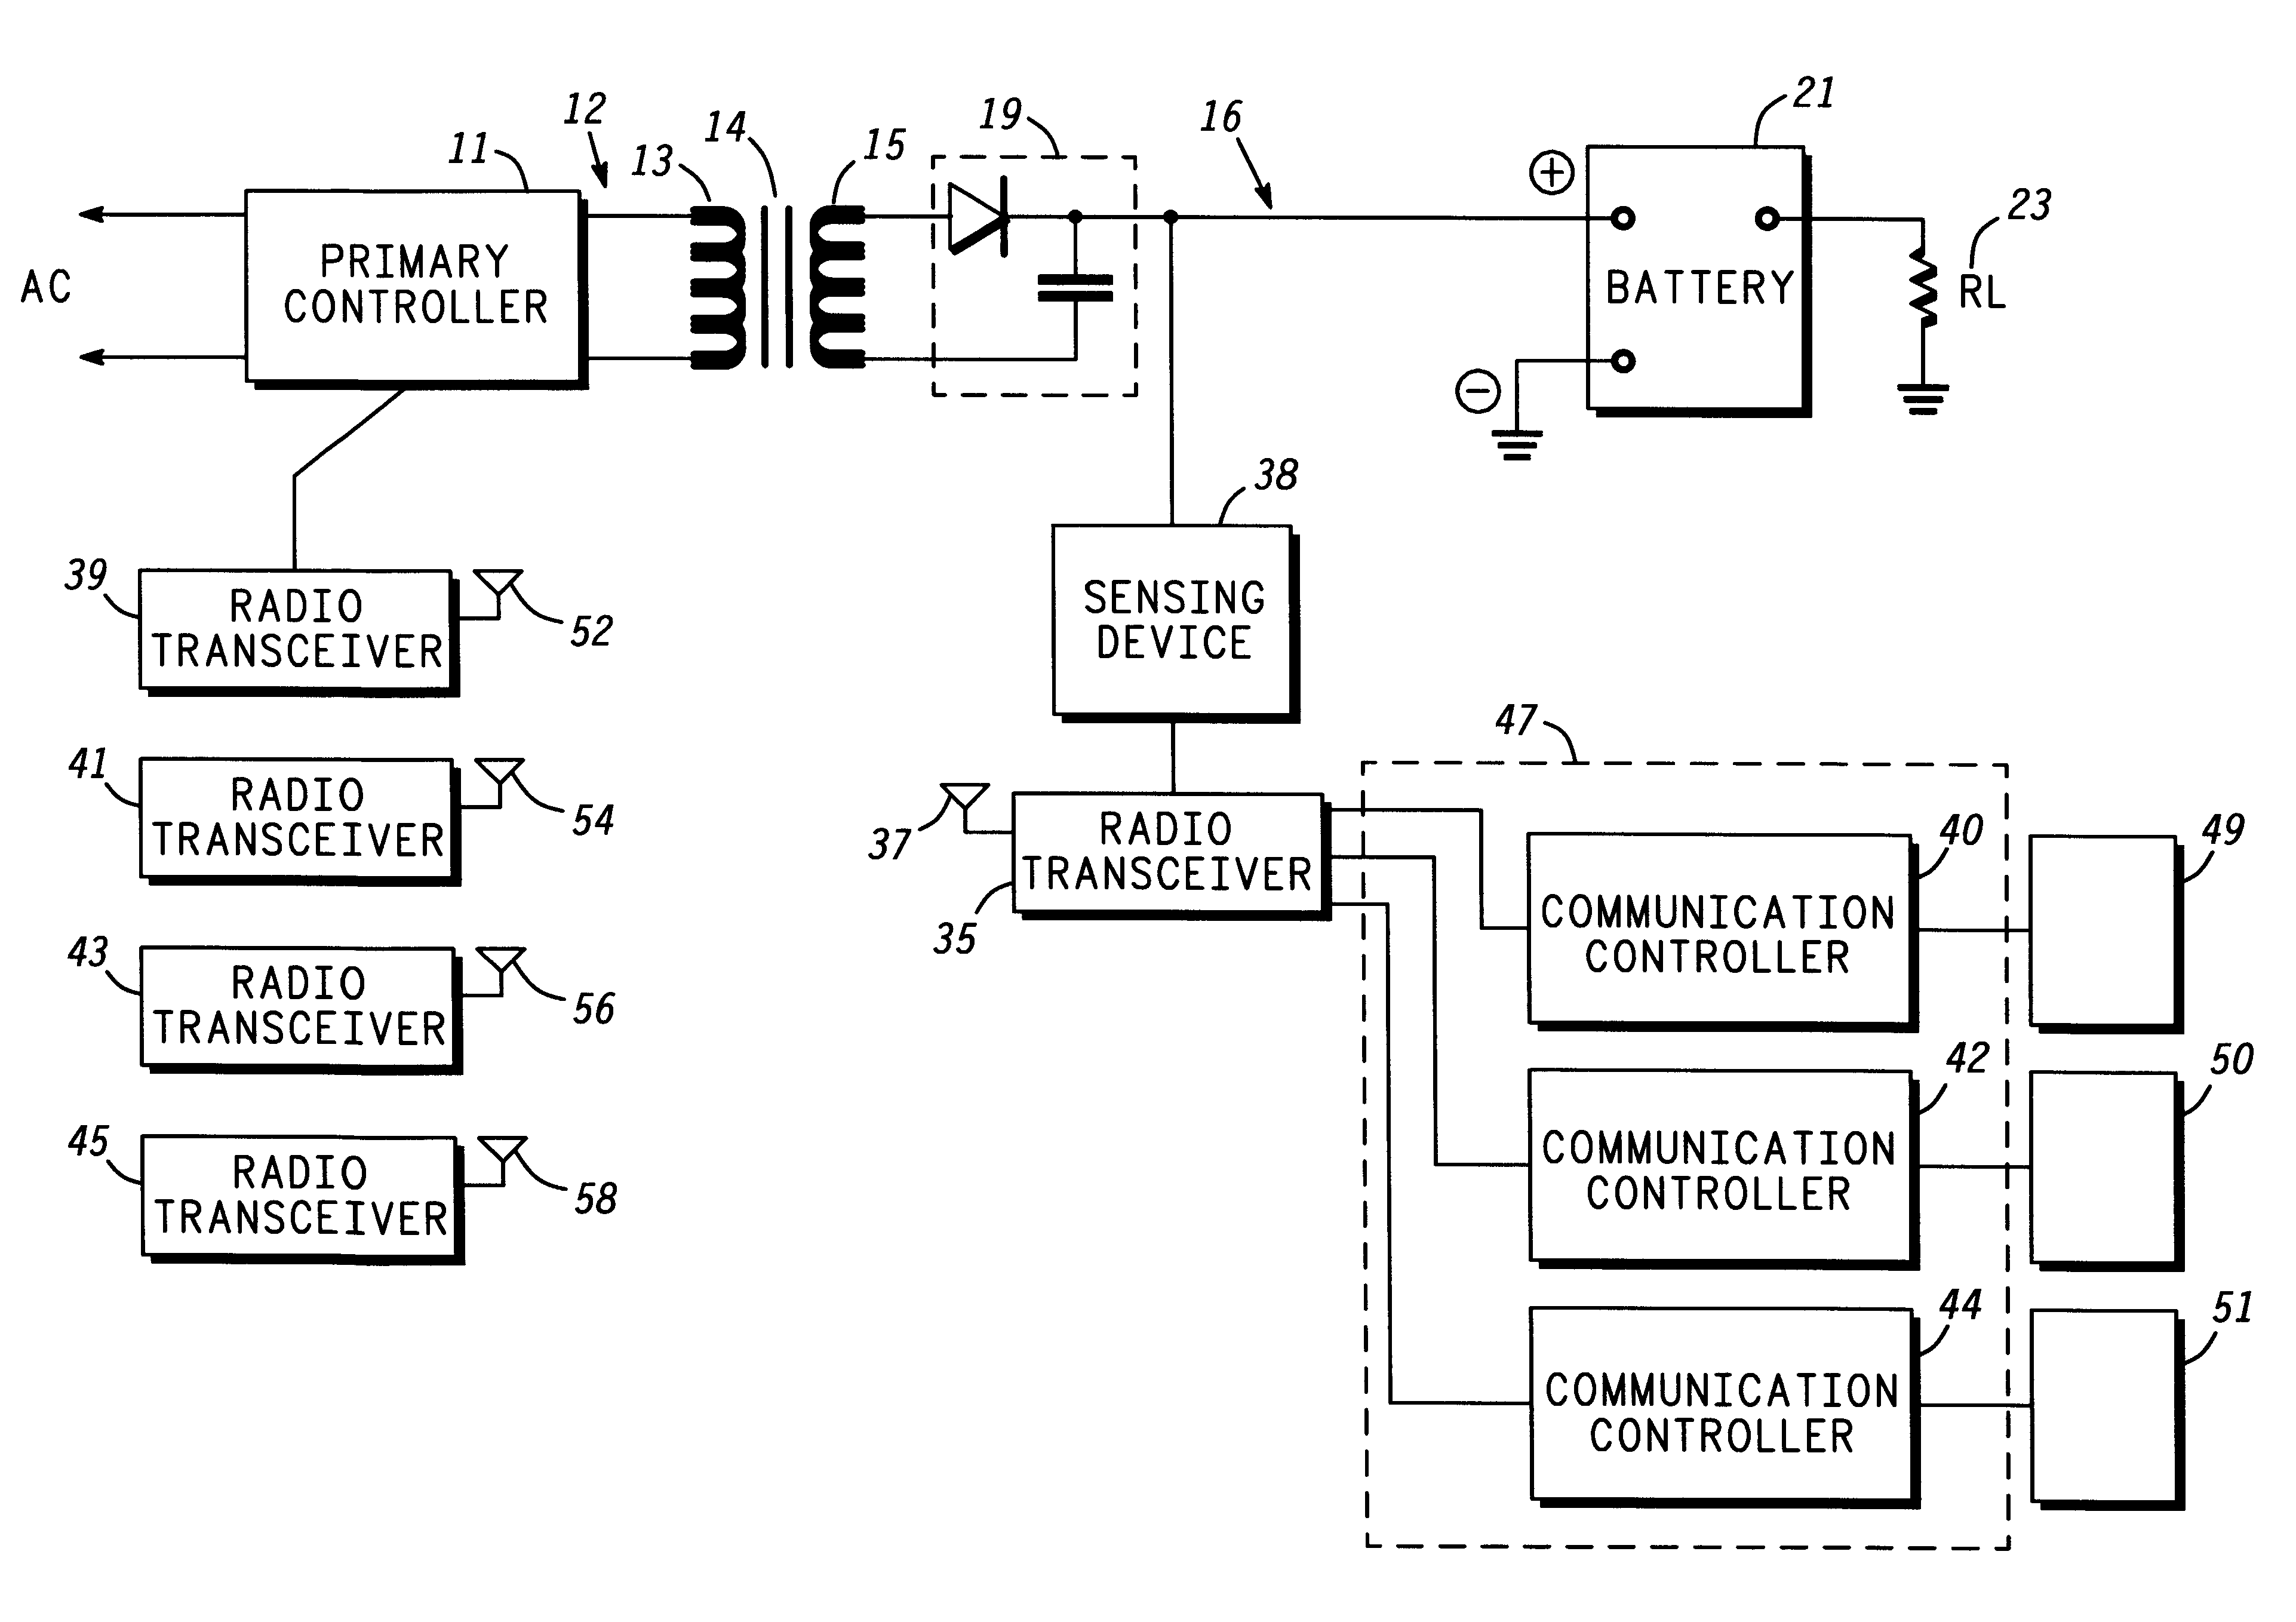 Analytics For Us Patent No 6184651 Contactless Battery Charger Circuit Diagram Communication Motorola 2000 Cell Phone The Controller 11 May Communicate Information Signals Via Inductive Coupling Or A Wireless Rf Link Communicating With Other Devices Such As